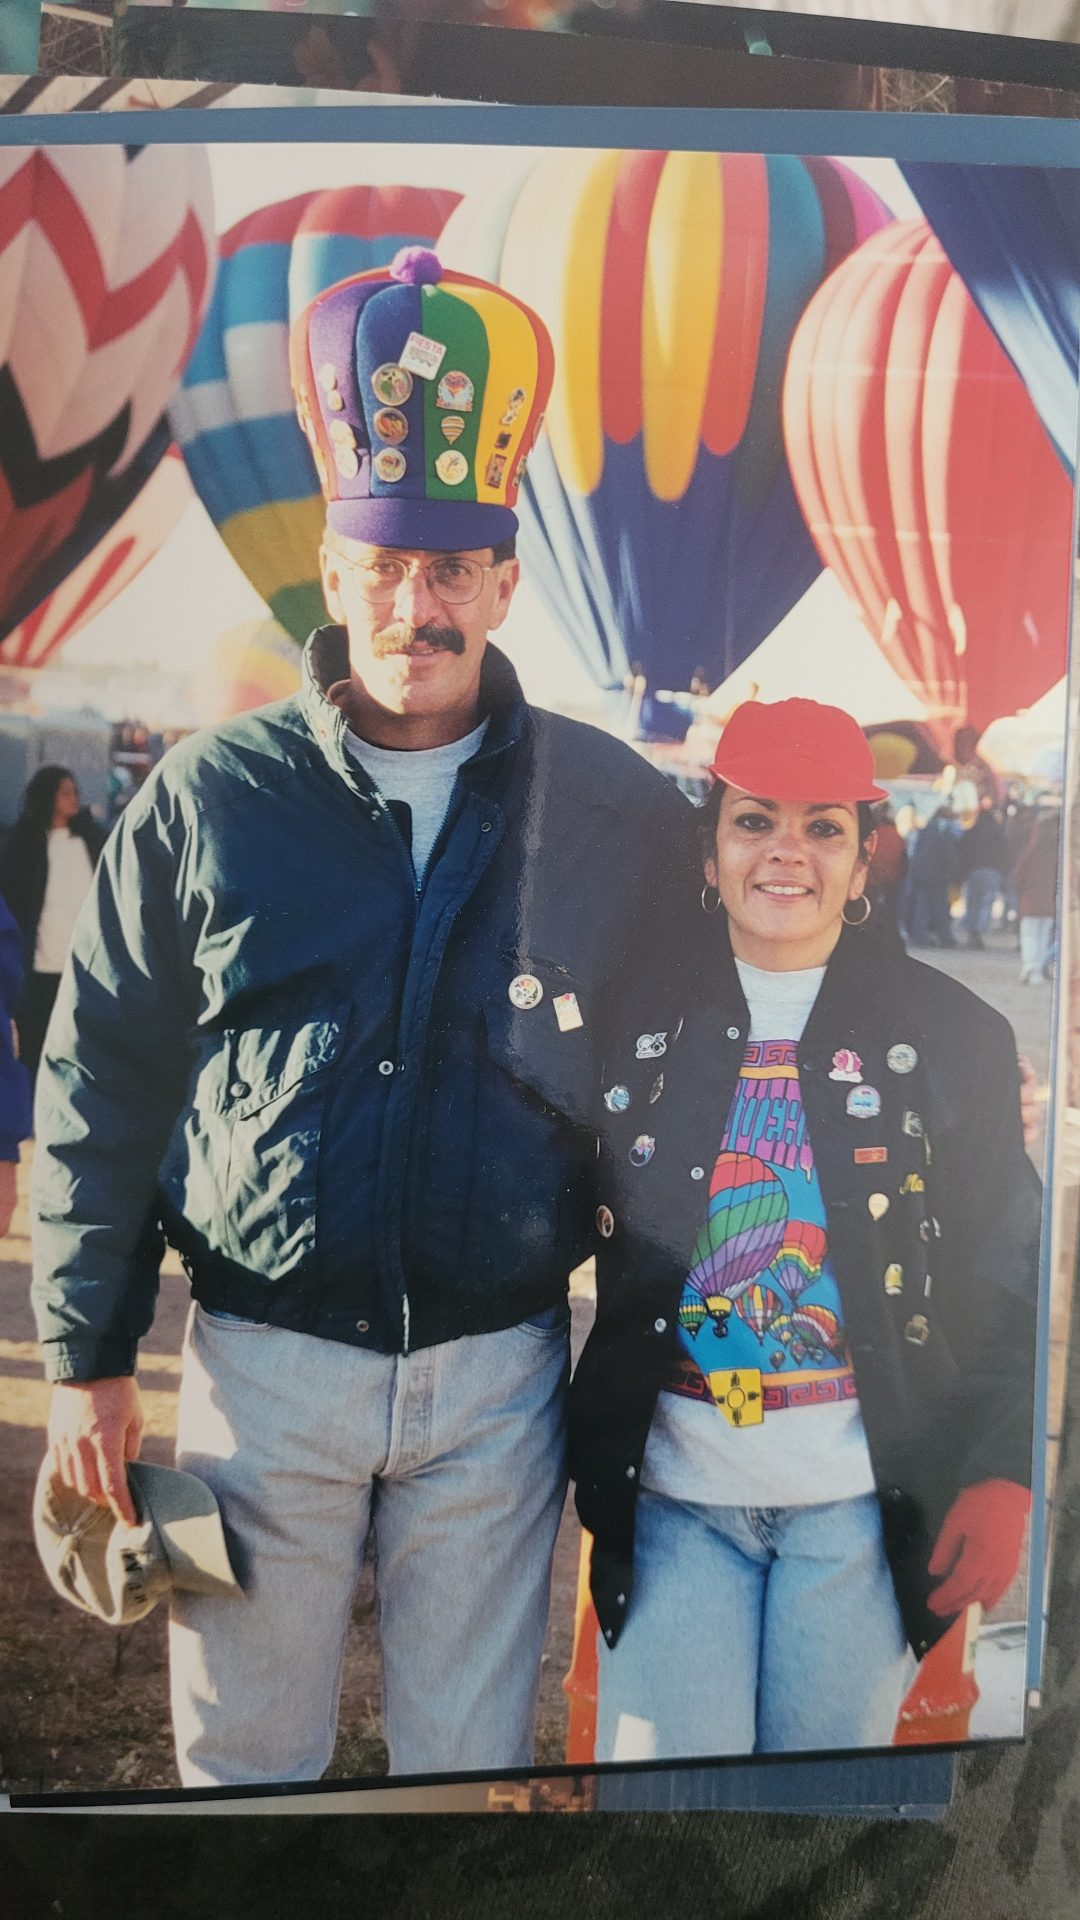 My parents doing what they loved...Hot Air Ballooning.